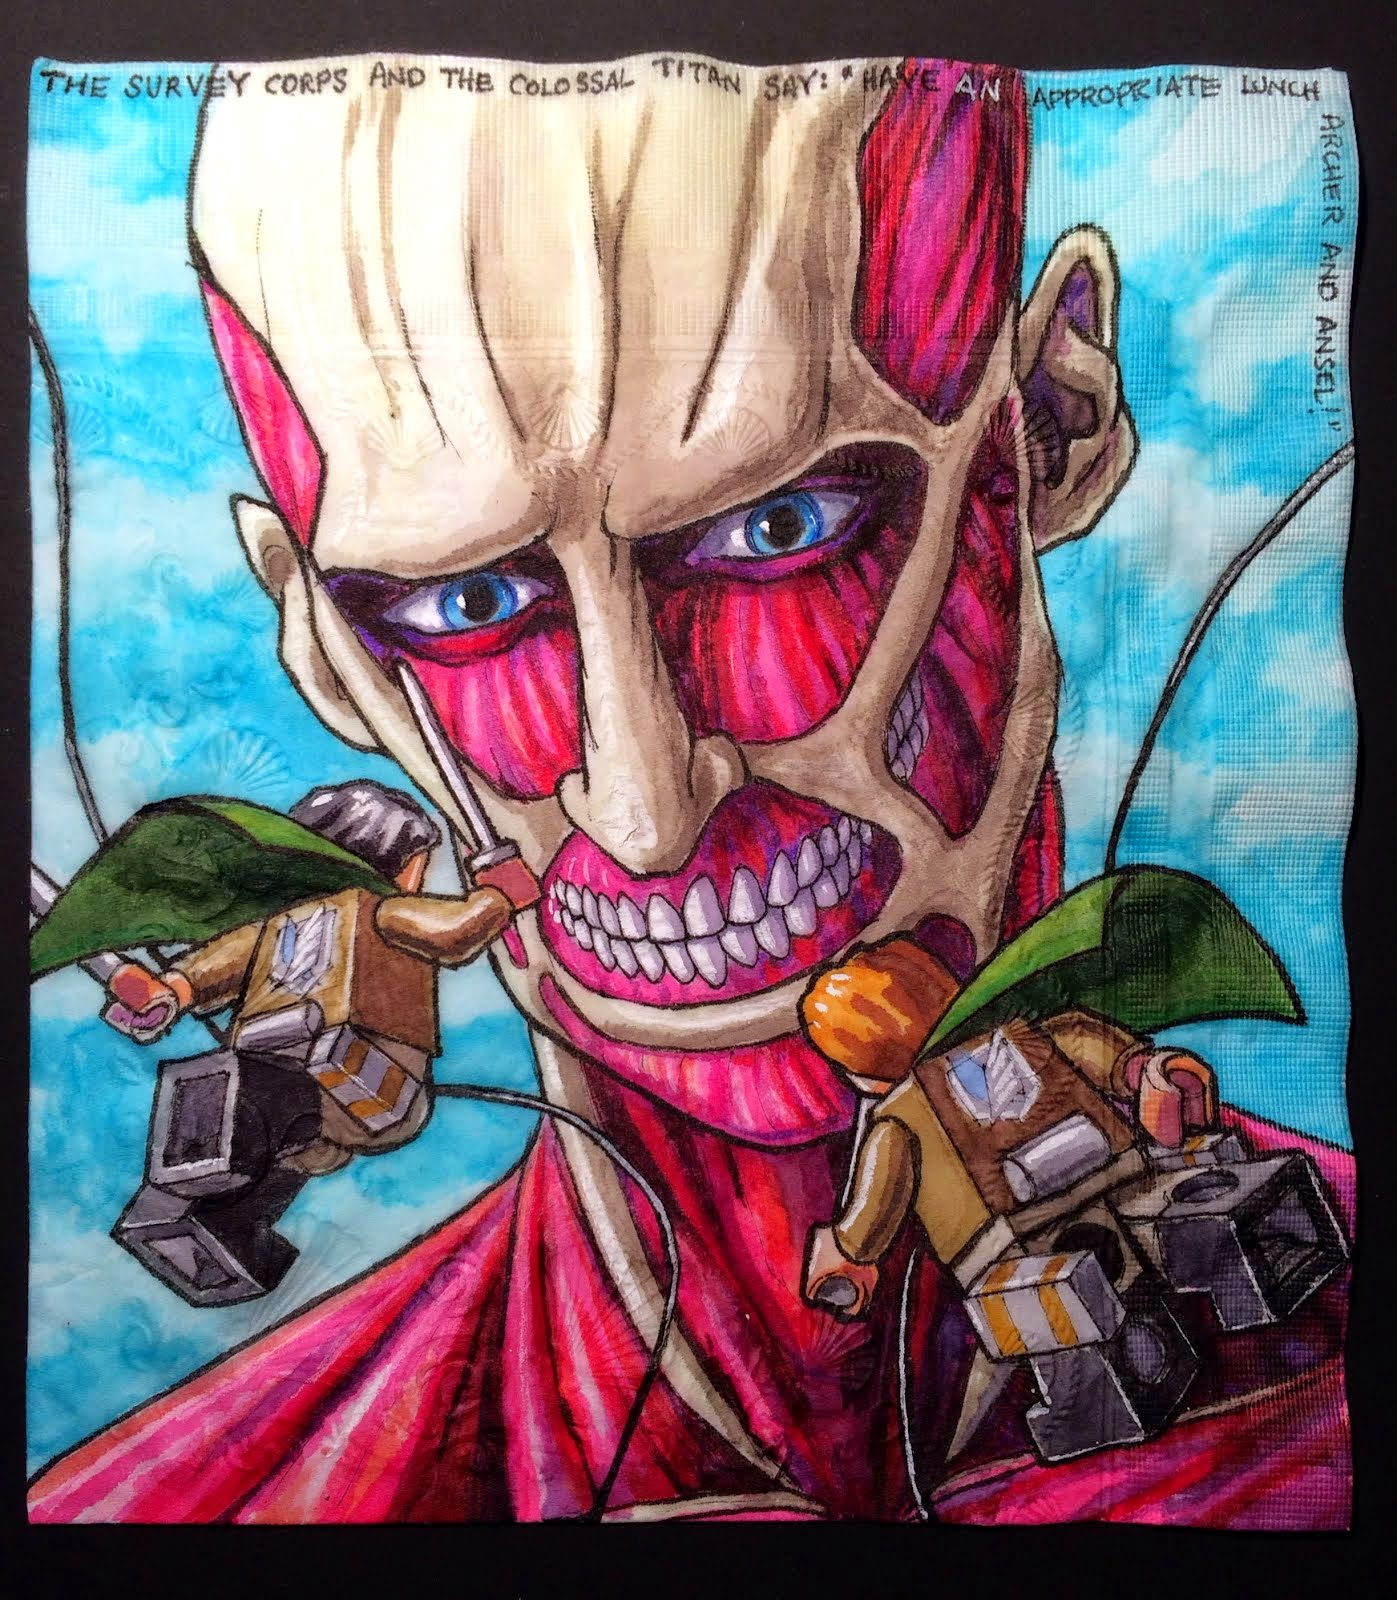 Daily Napkins: Attack on Colossal Titan by LEGO Survey Corp